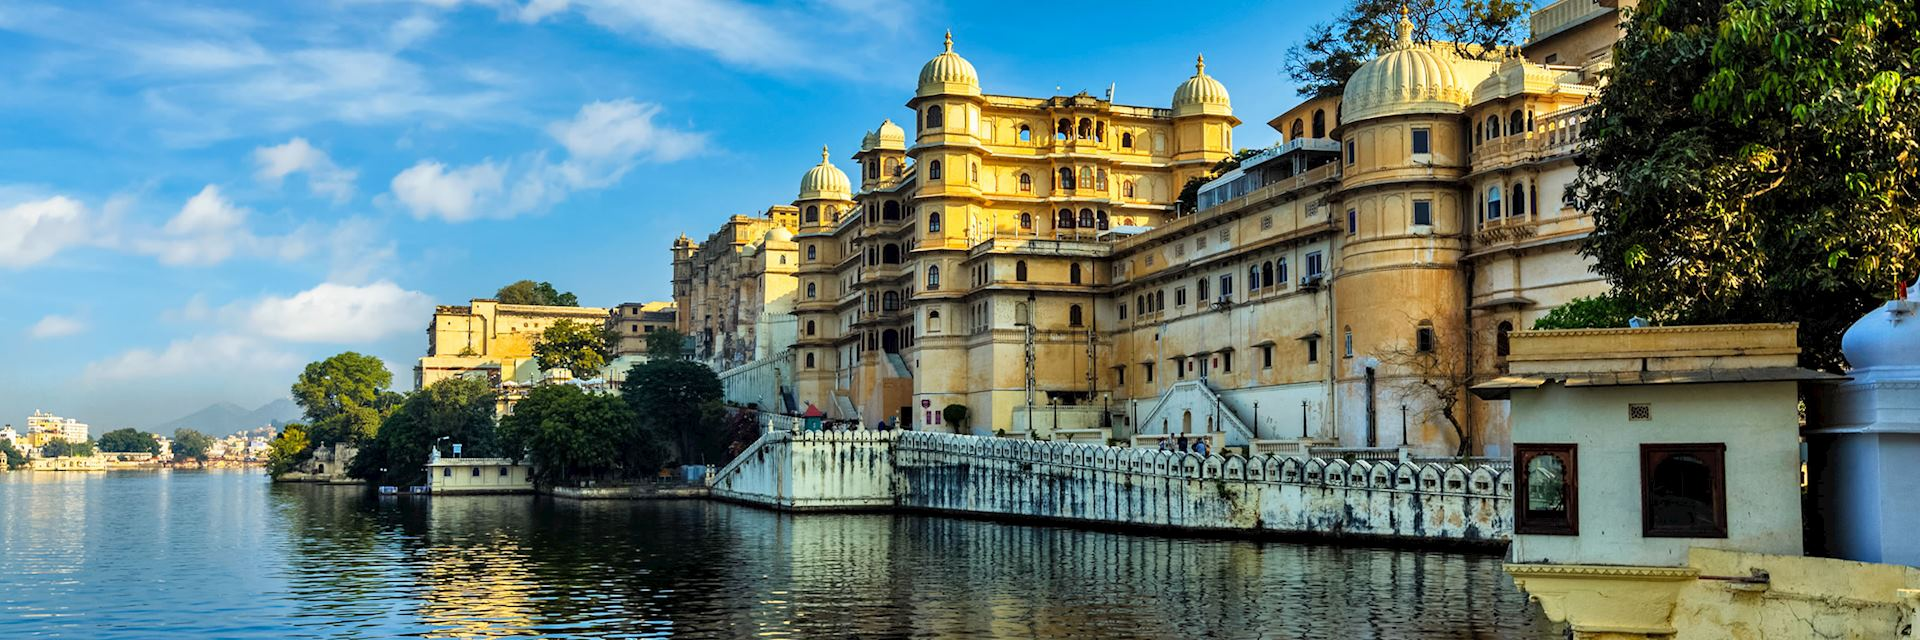 The City Palace in Udaipur